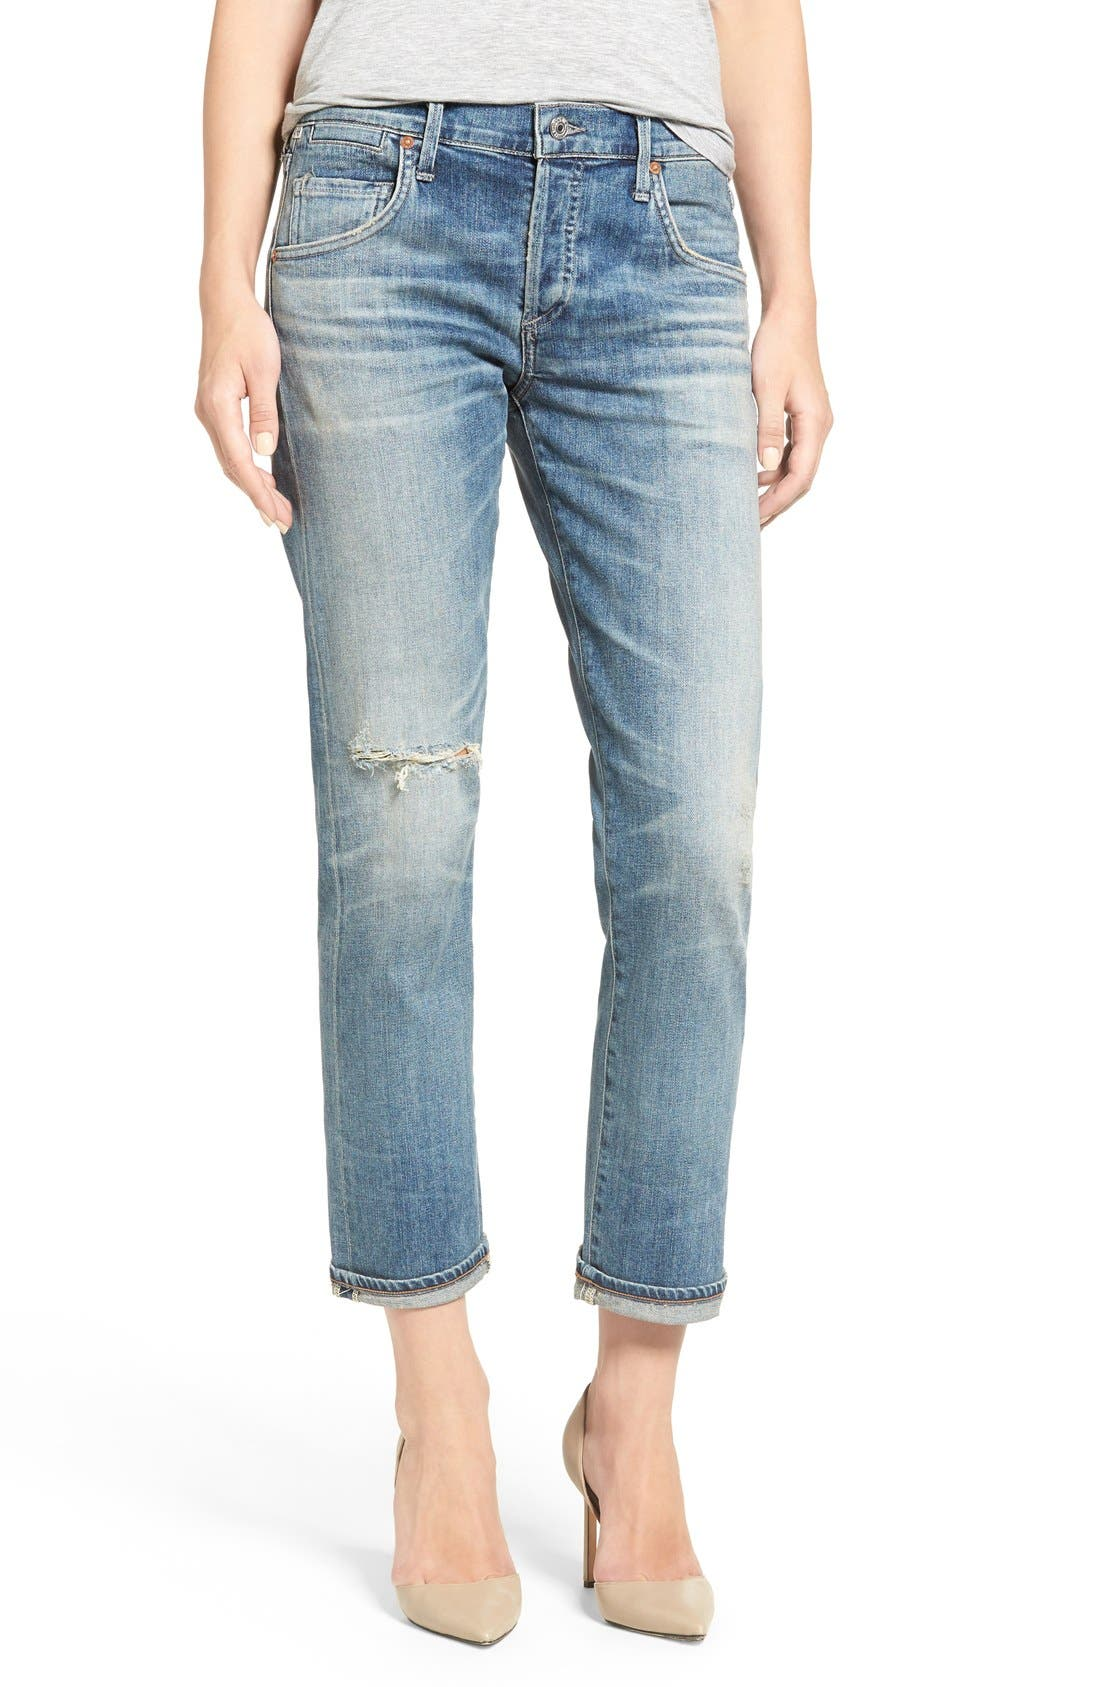 'Emerson' Ripped Slim Boyfriend Jeans,                         Main,                         color, Roseland